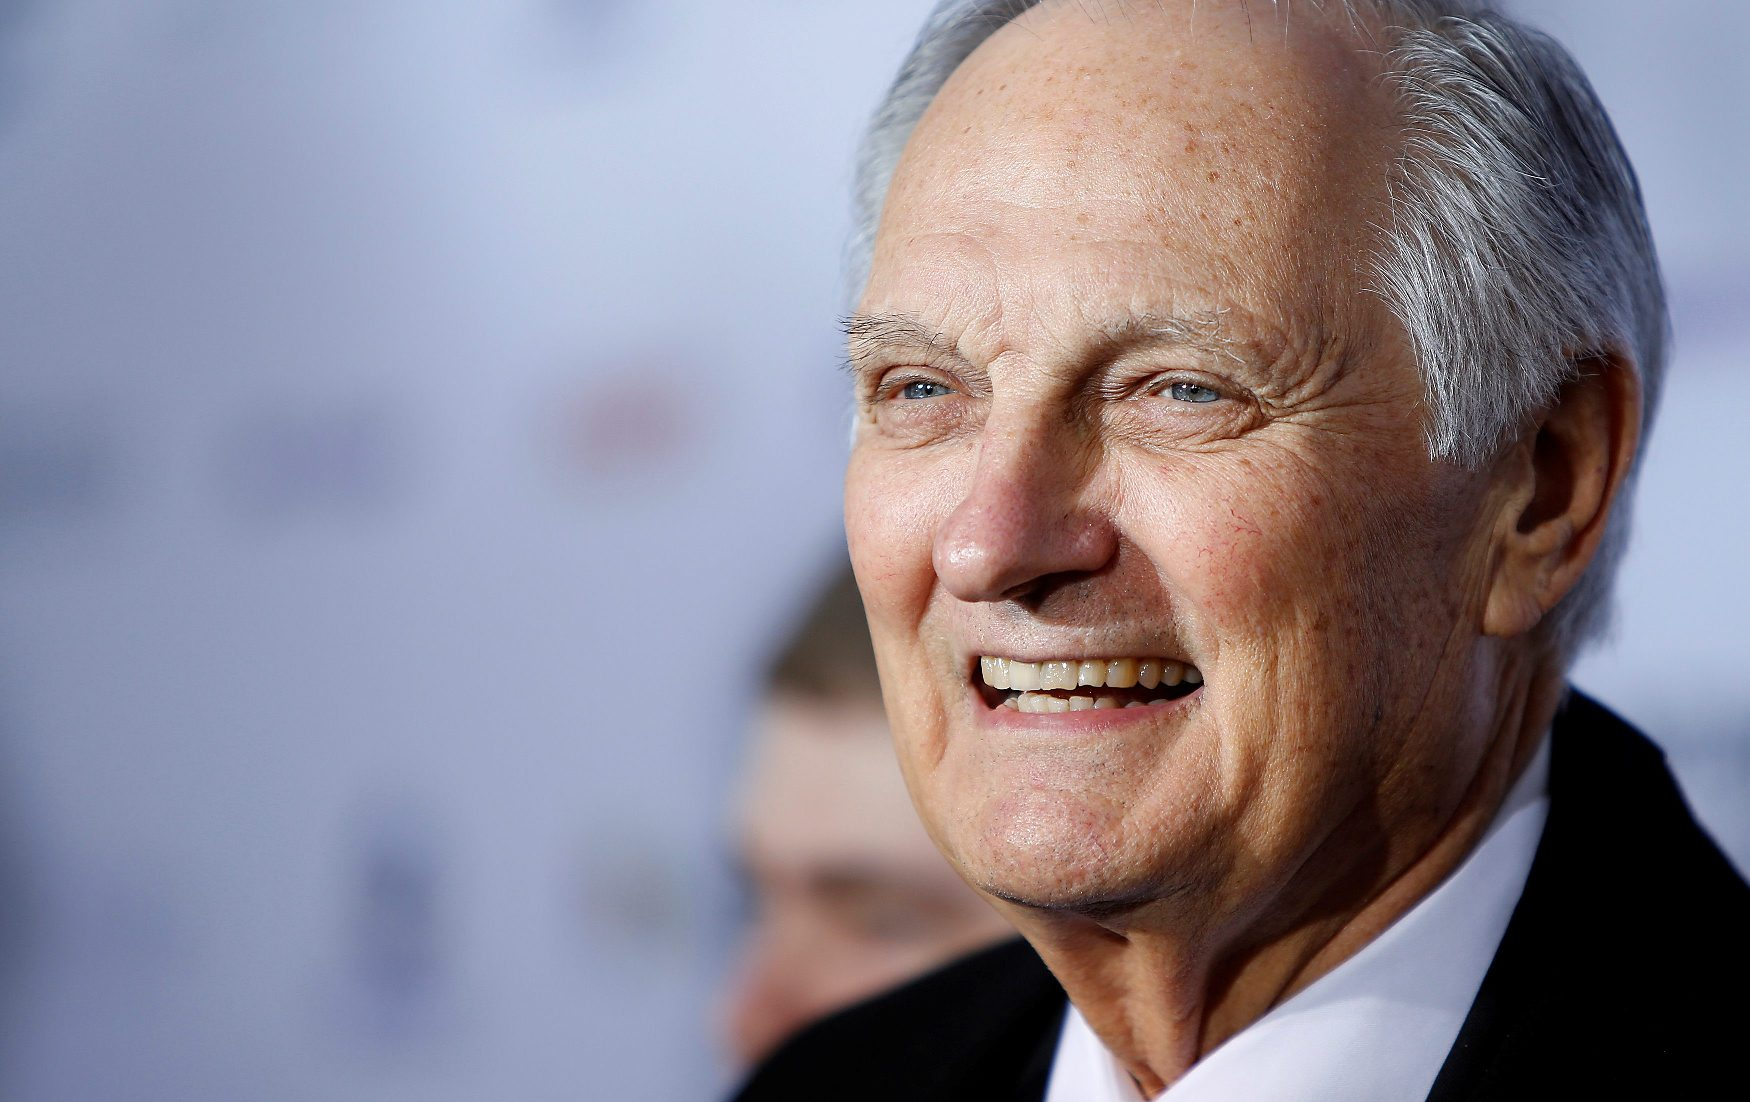 2018-07-31T145701Z_27759101_RC15FC5E5FC0_RTRMADP_3_PEOPLE-ALAN-ALDA